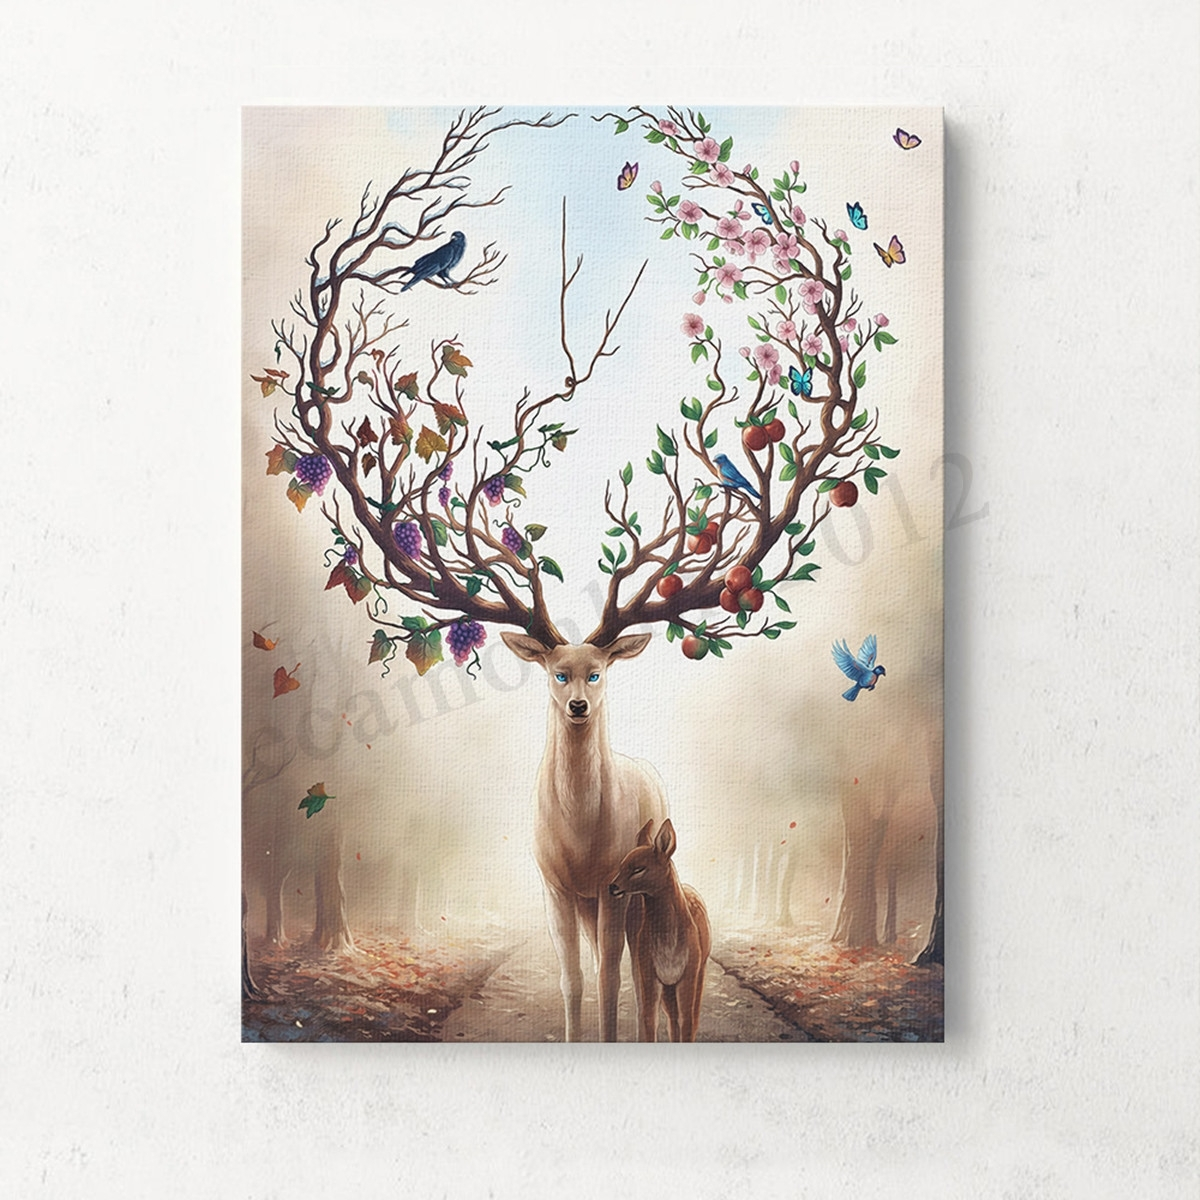 Unframed Canvas Print Deer Design Modern Home Decor Wall Art Throughout Latest Home Wall Art (View 15 of 20)